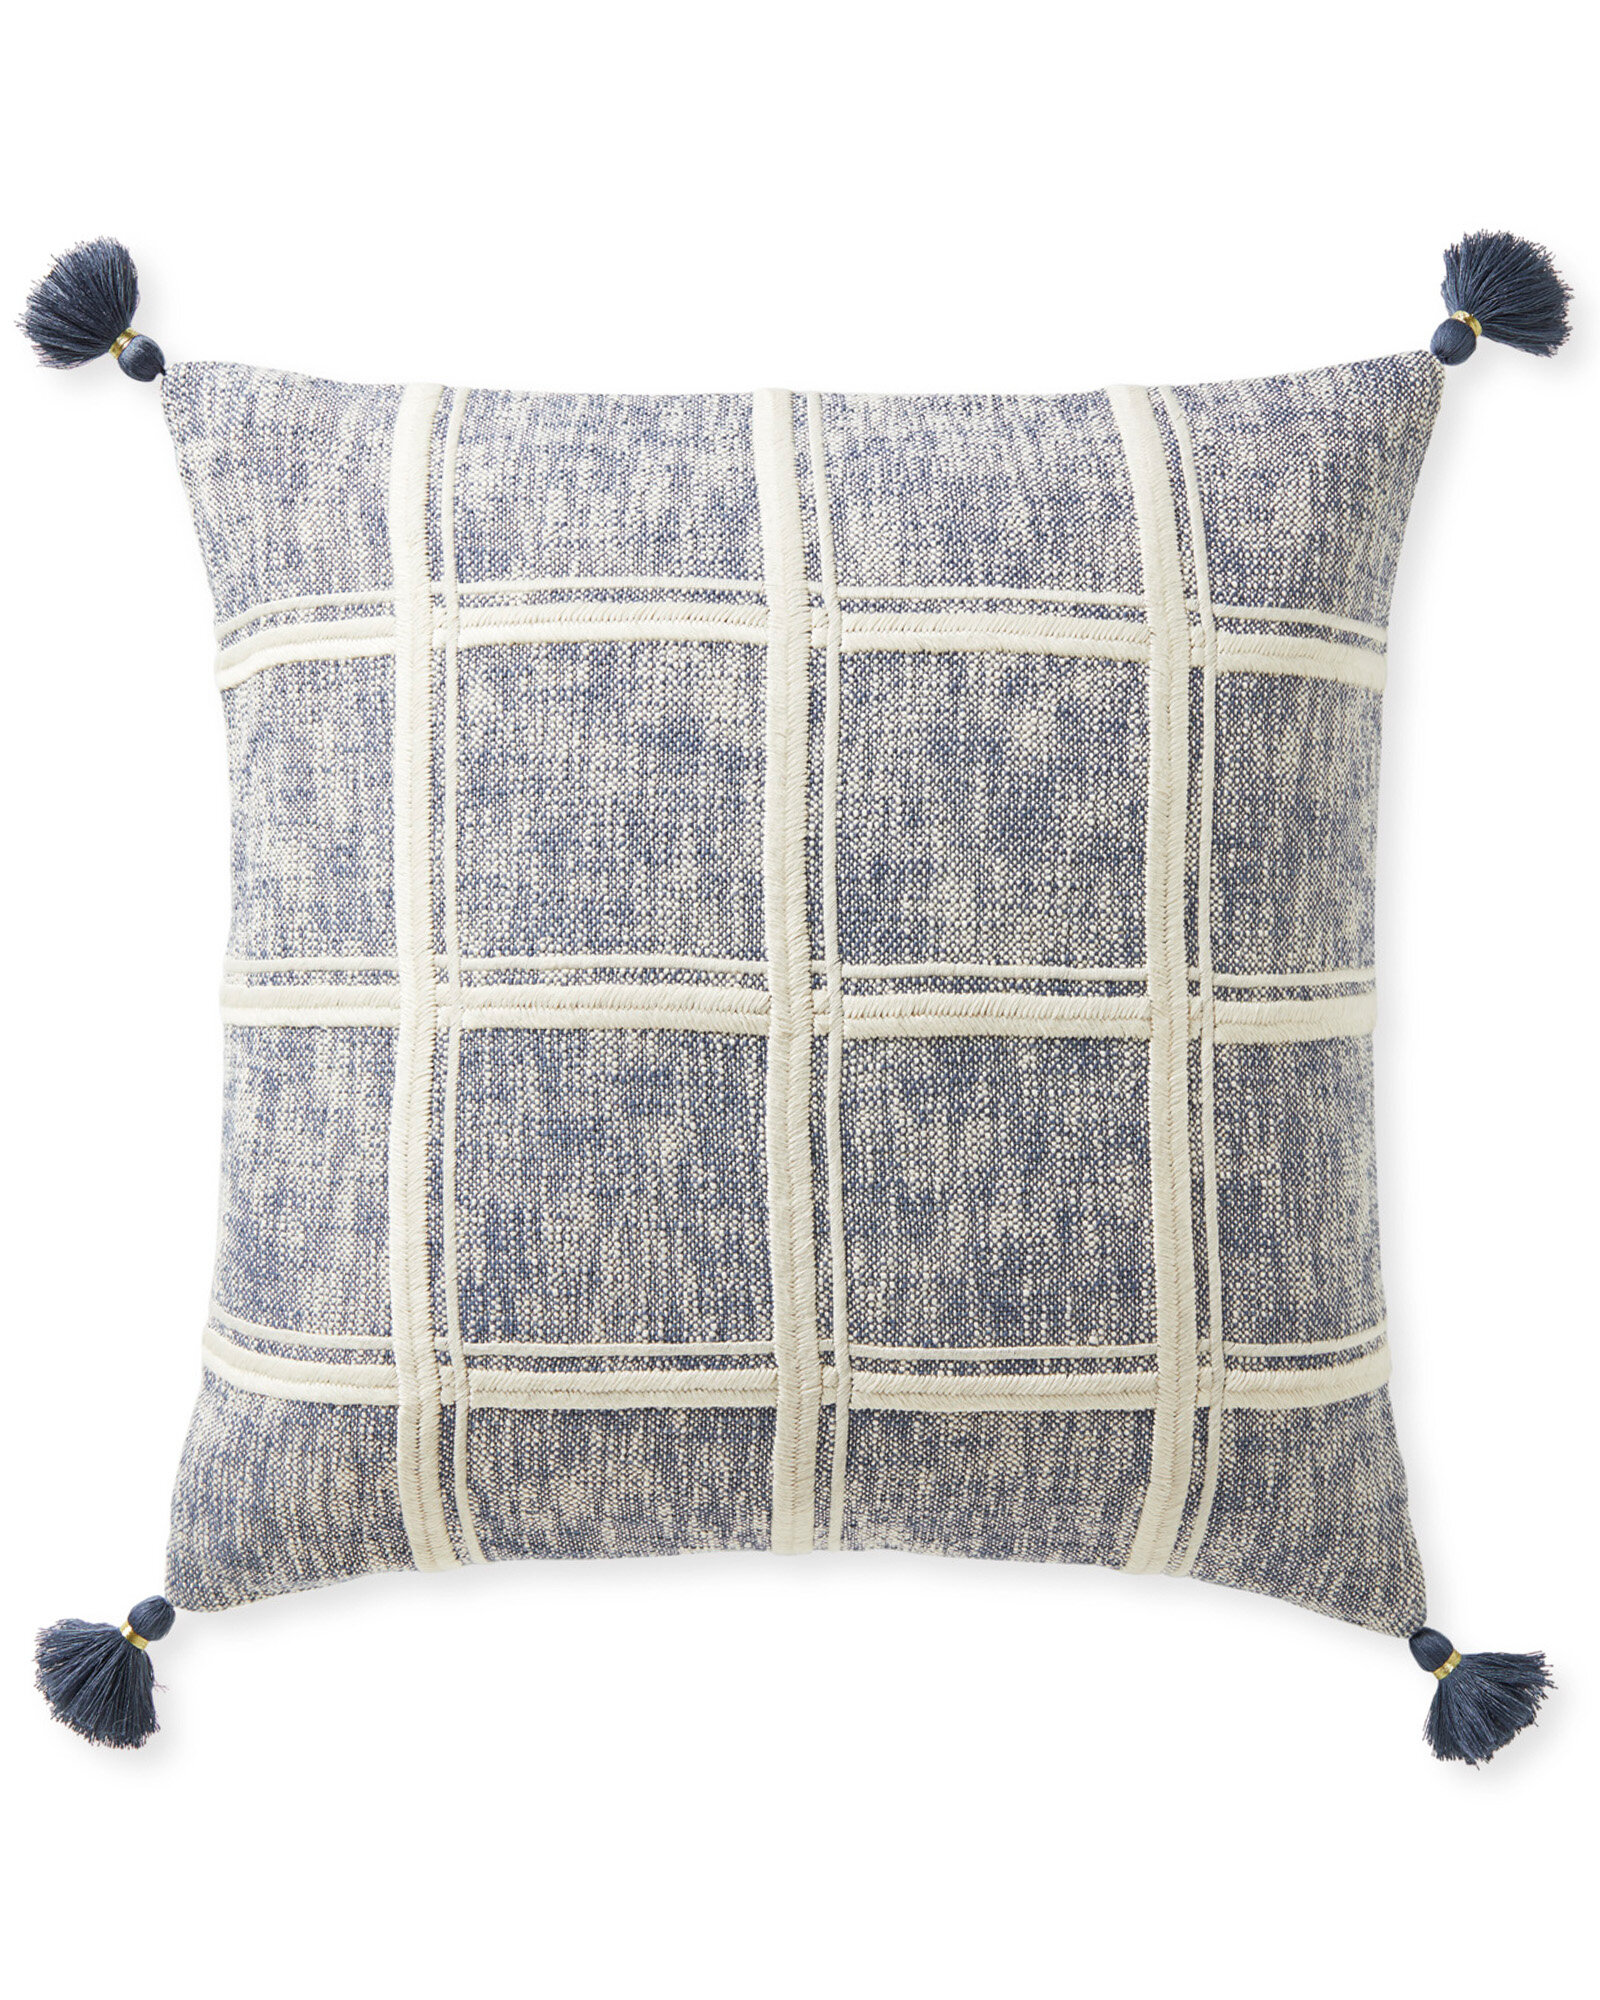 Dec_Pillow_Ashby_24x24_Vintage_Indigo_MV_0467_Crop_SH.jpg